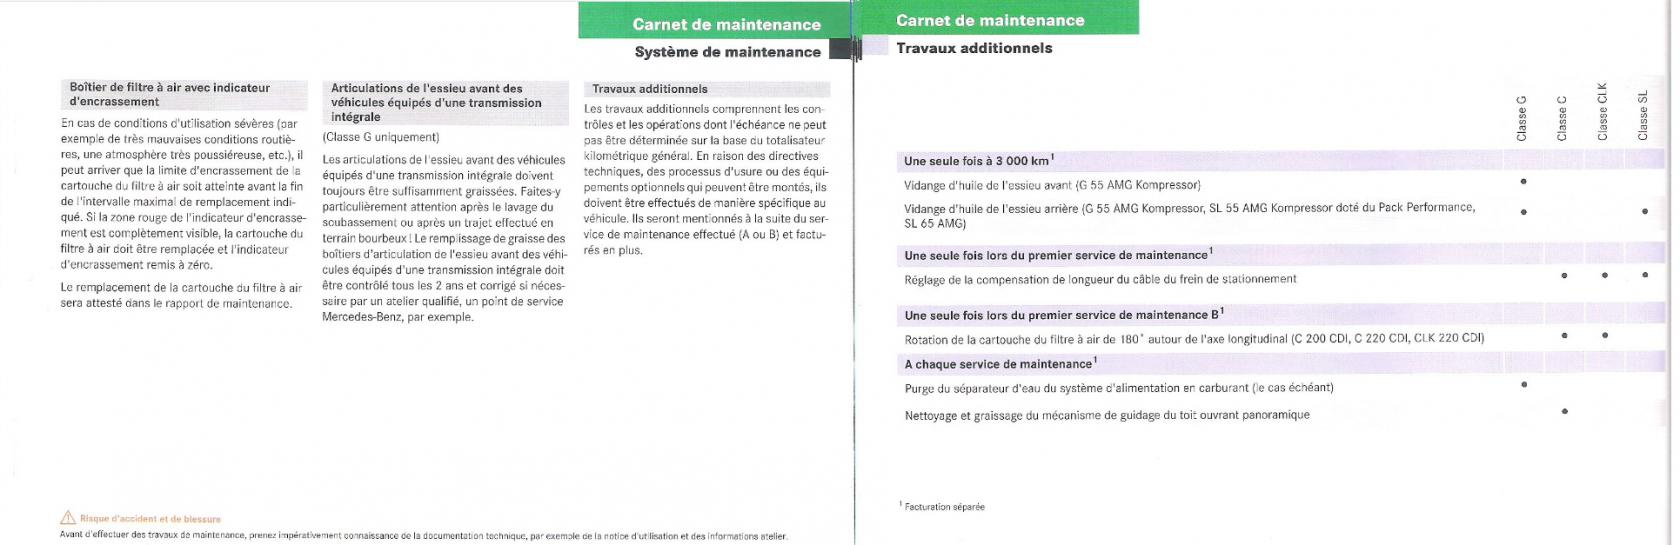 W209-2007-CARNET-MAINTENANCE-03.jpeg